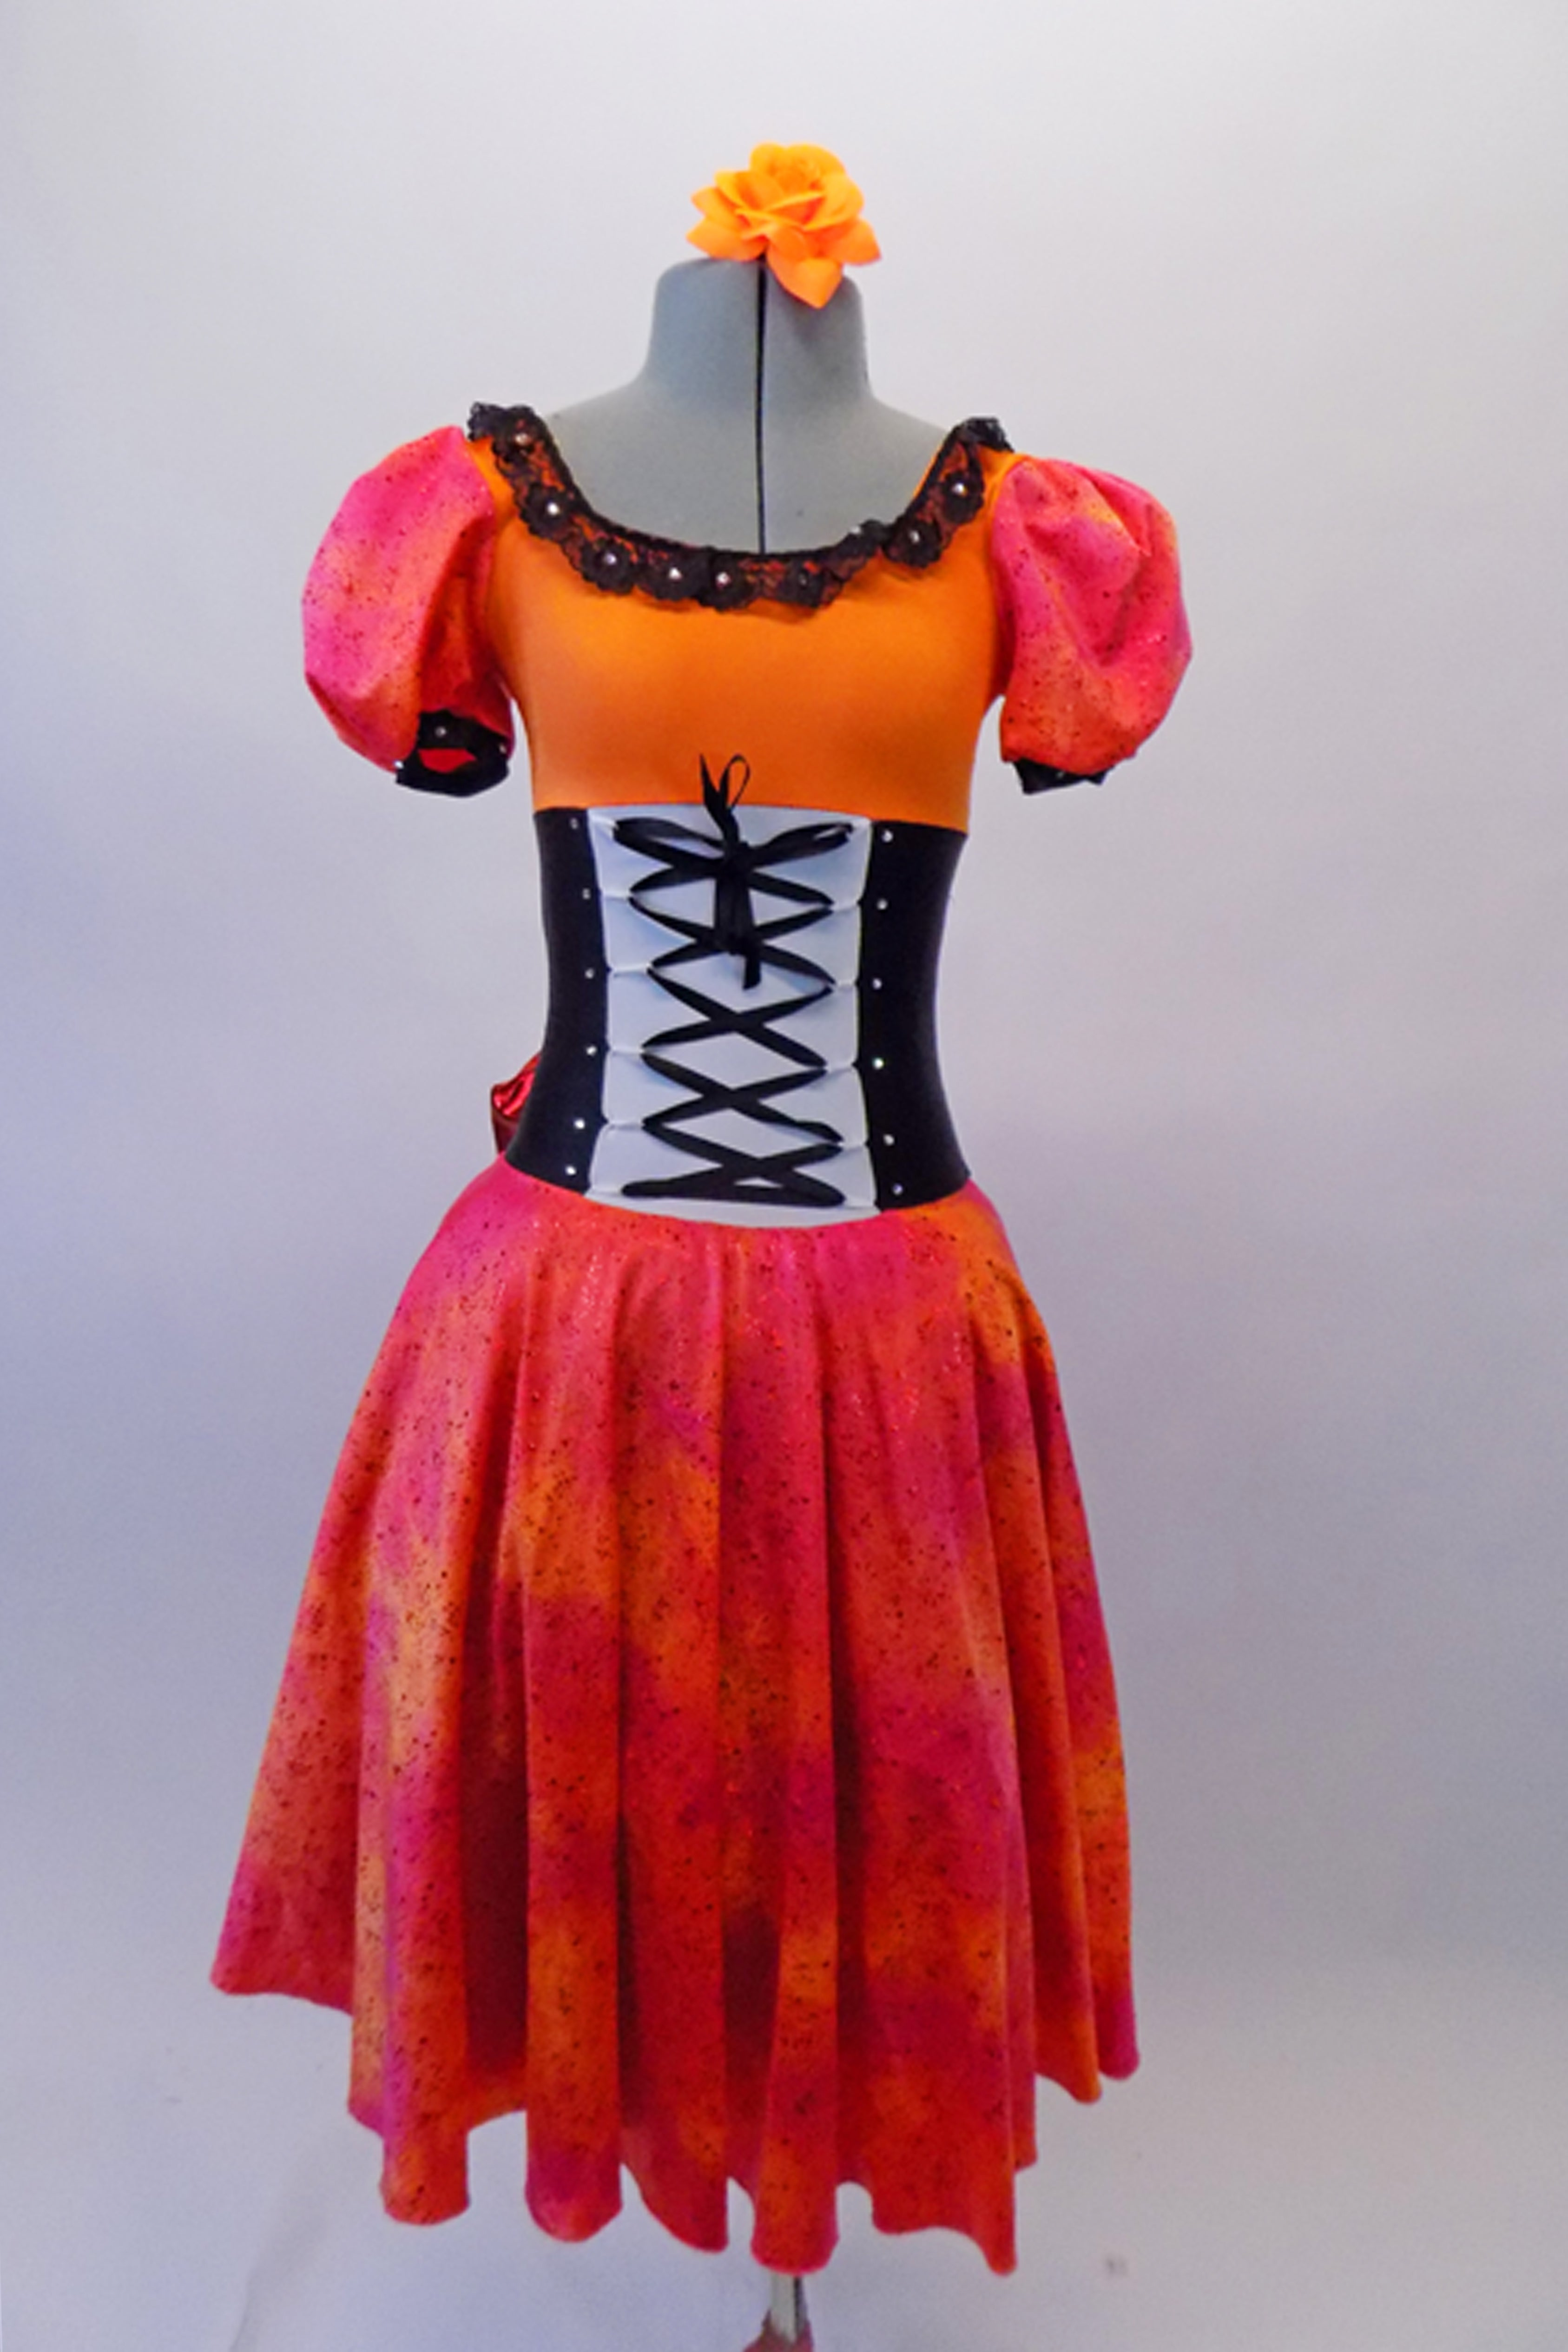 The layers of petticoat and orange bustle with bow, create loads of volume beneath a colourful skirt in shades of red pink & orange. The skirt portion of the dress compliments the orange bodice, ruffled neckline, pouffe sleeves and faux corset laced waistband. Front